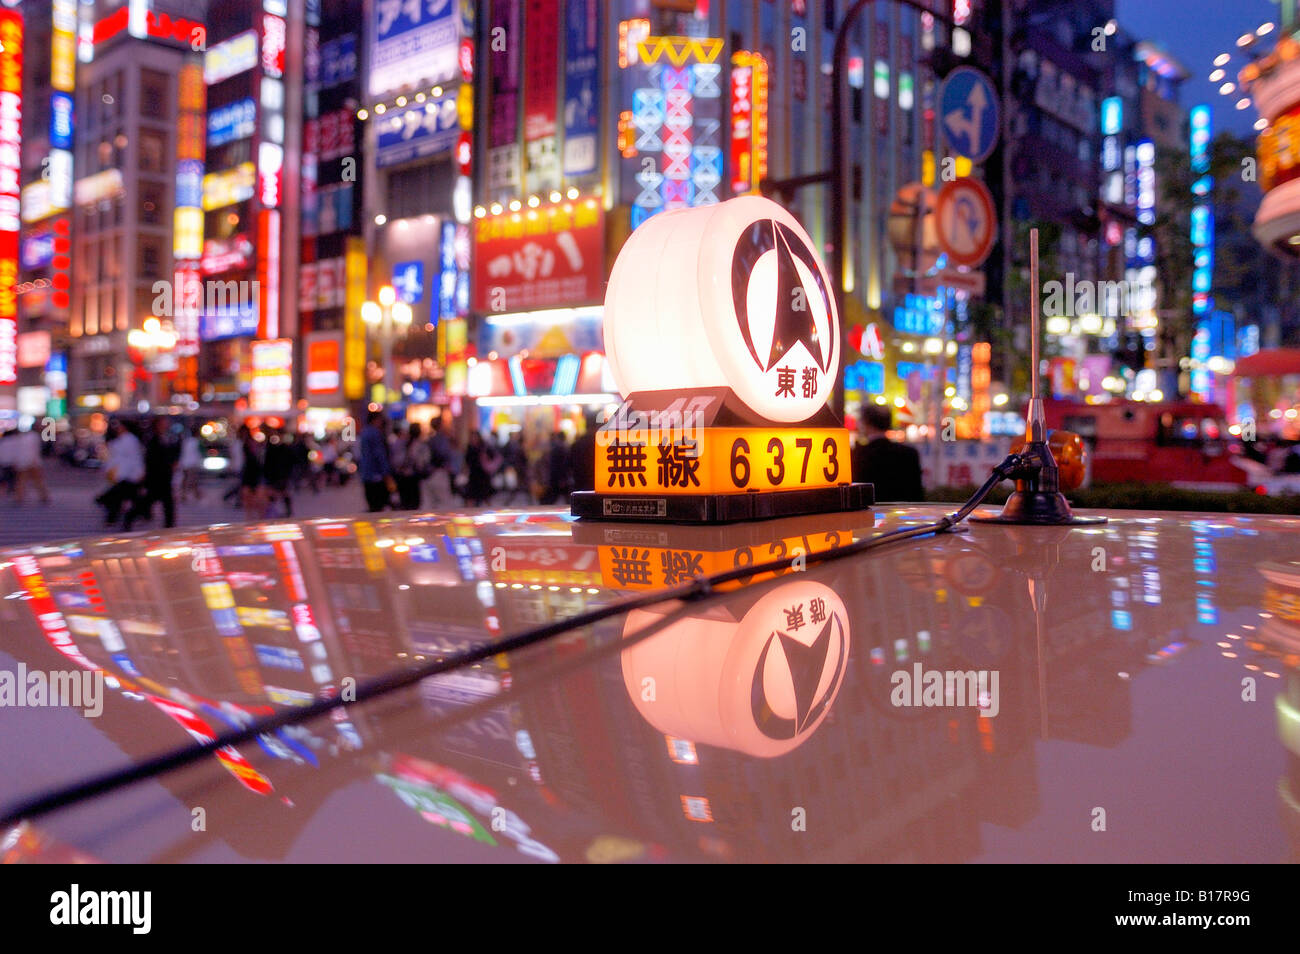 roof of a taxi and neon lights Shinjuku Tokyo Japan - Stock Image